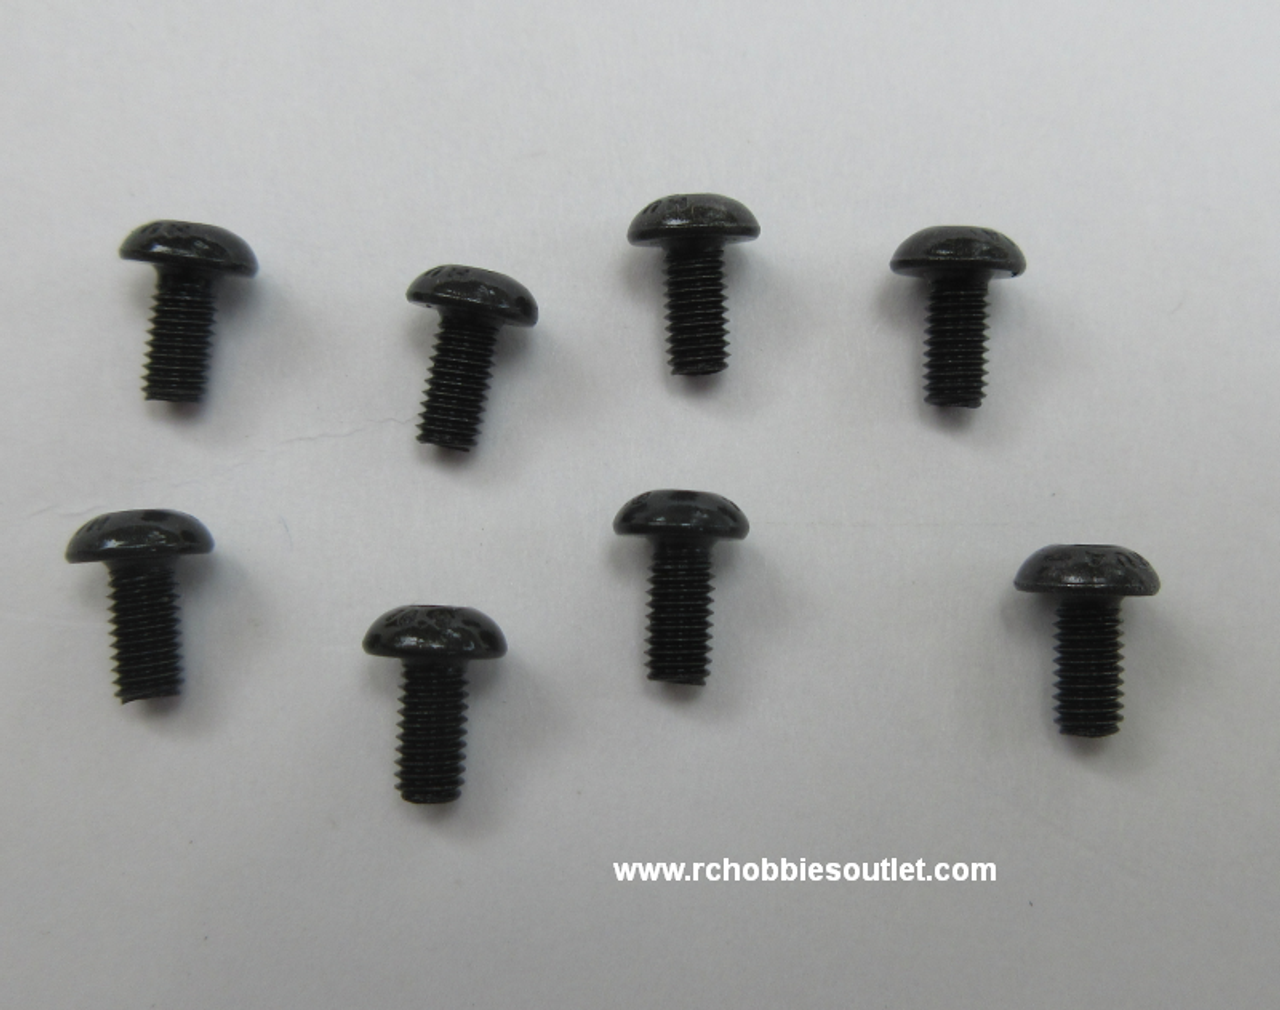 3x6mm Metal Screw (8pcs) for L160-2, L250